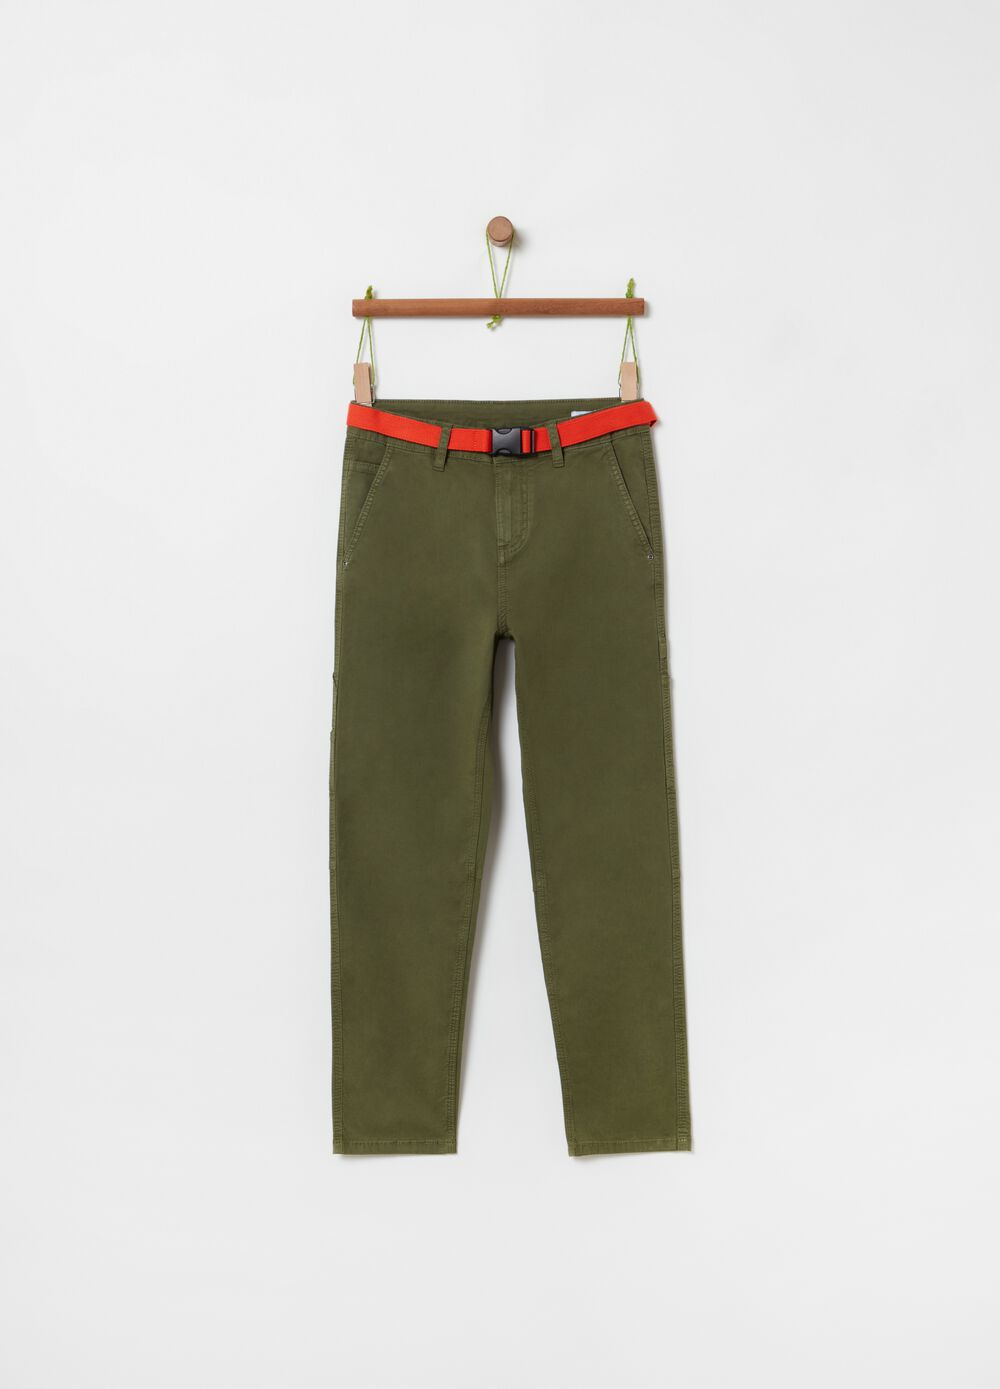 Cargo trousers with belt and pockets